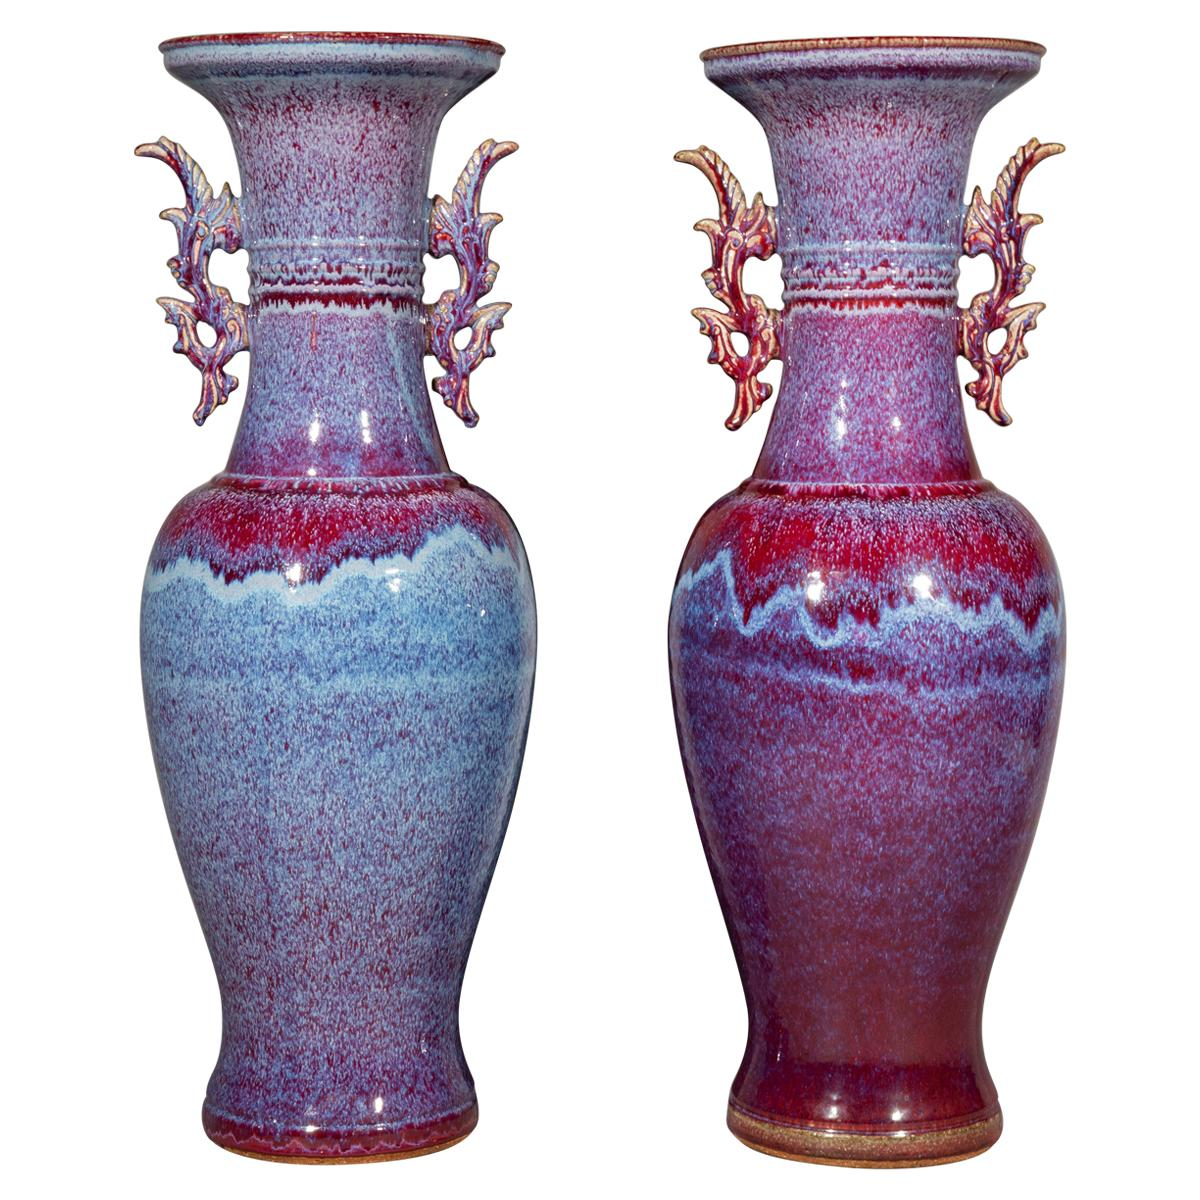 Pair of Chinese Flambé Glazed Floor Vases of Massive Proportions